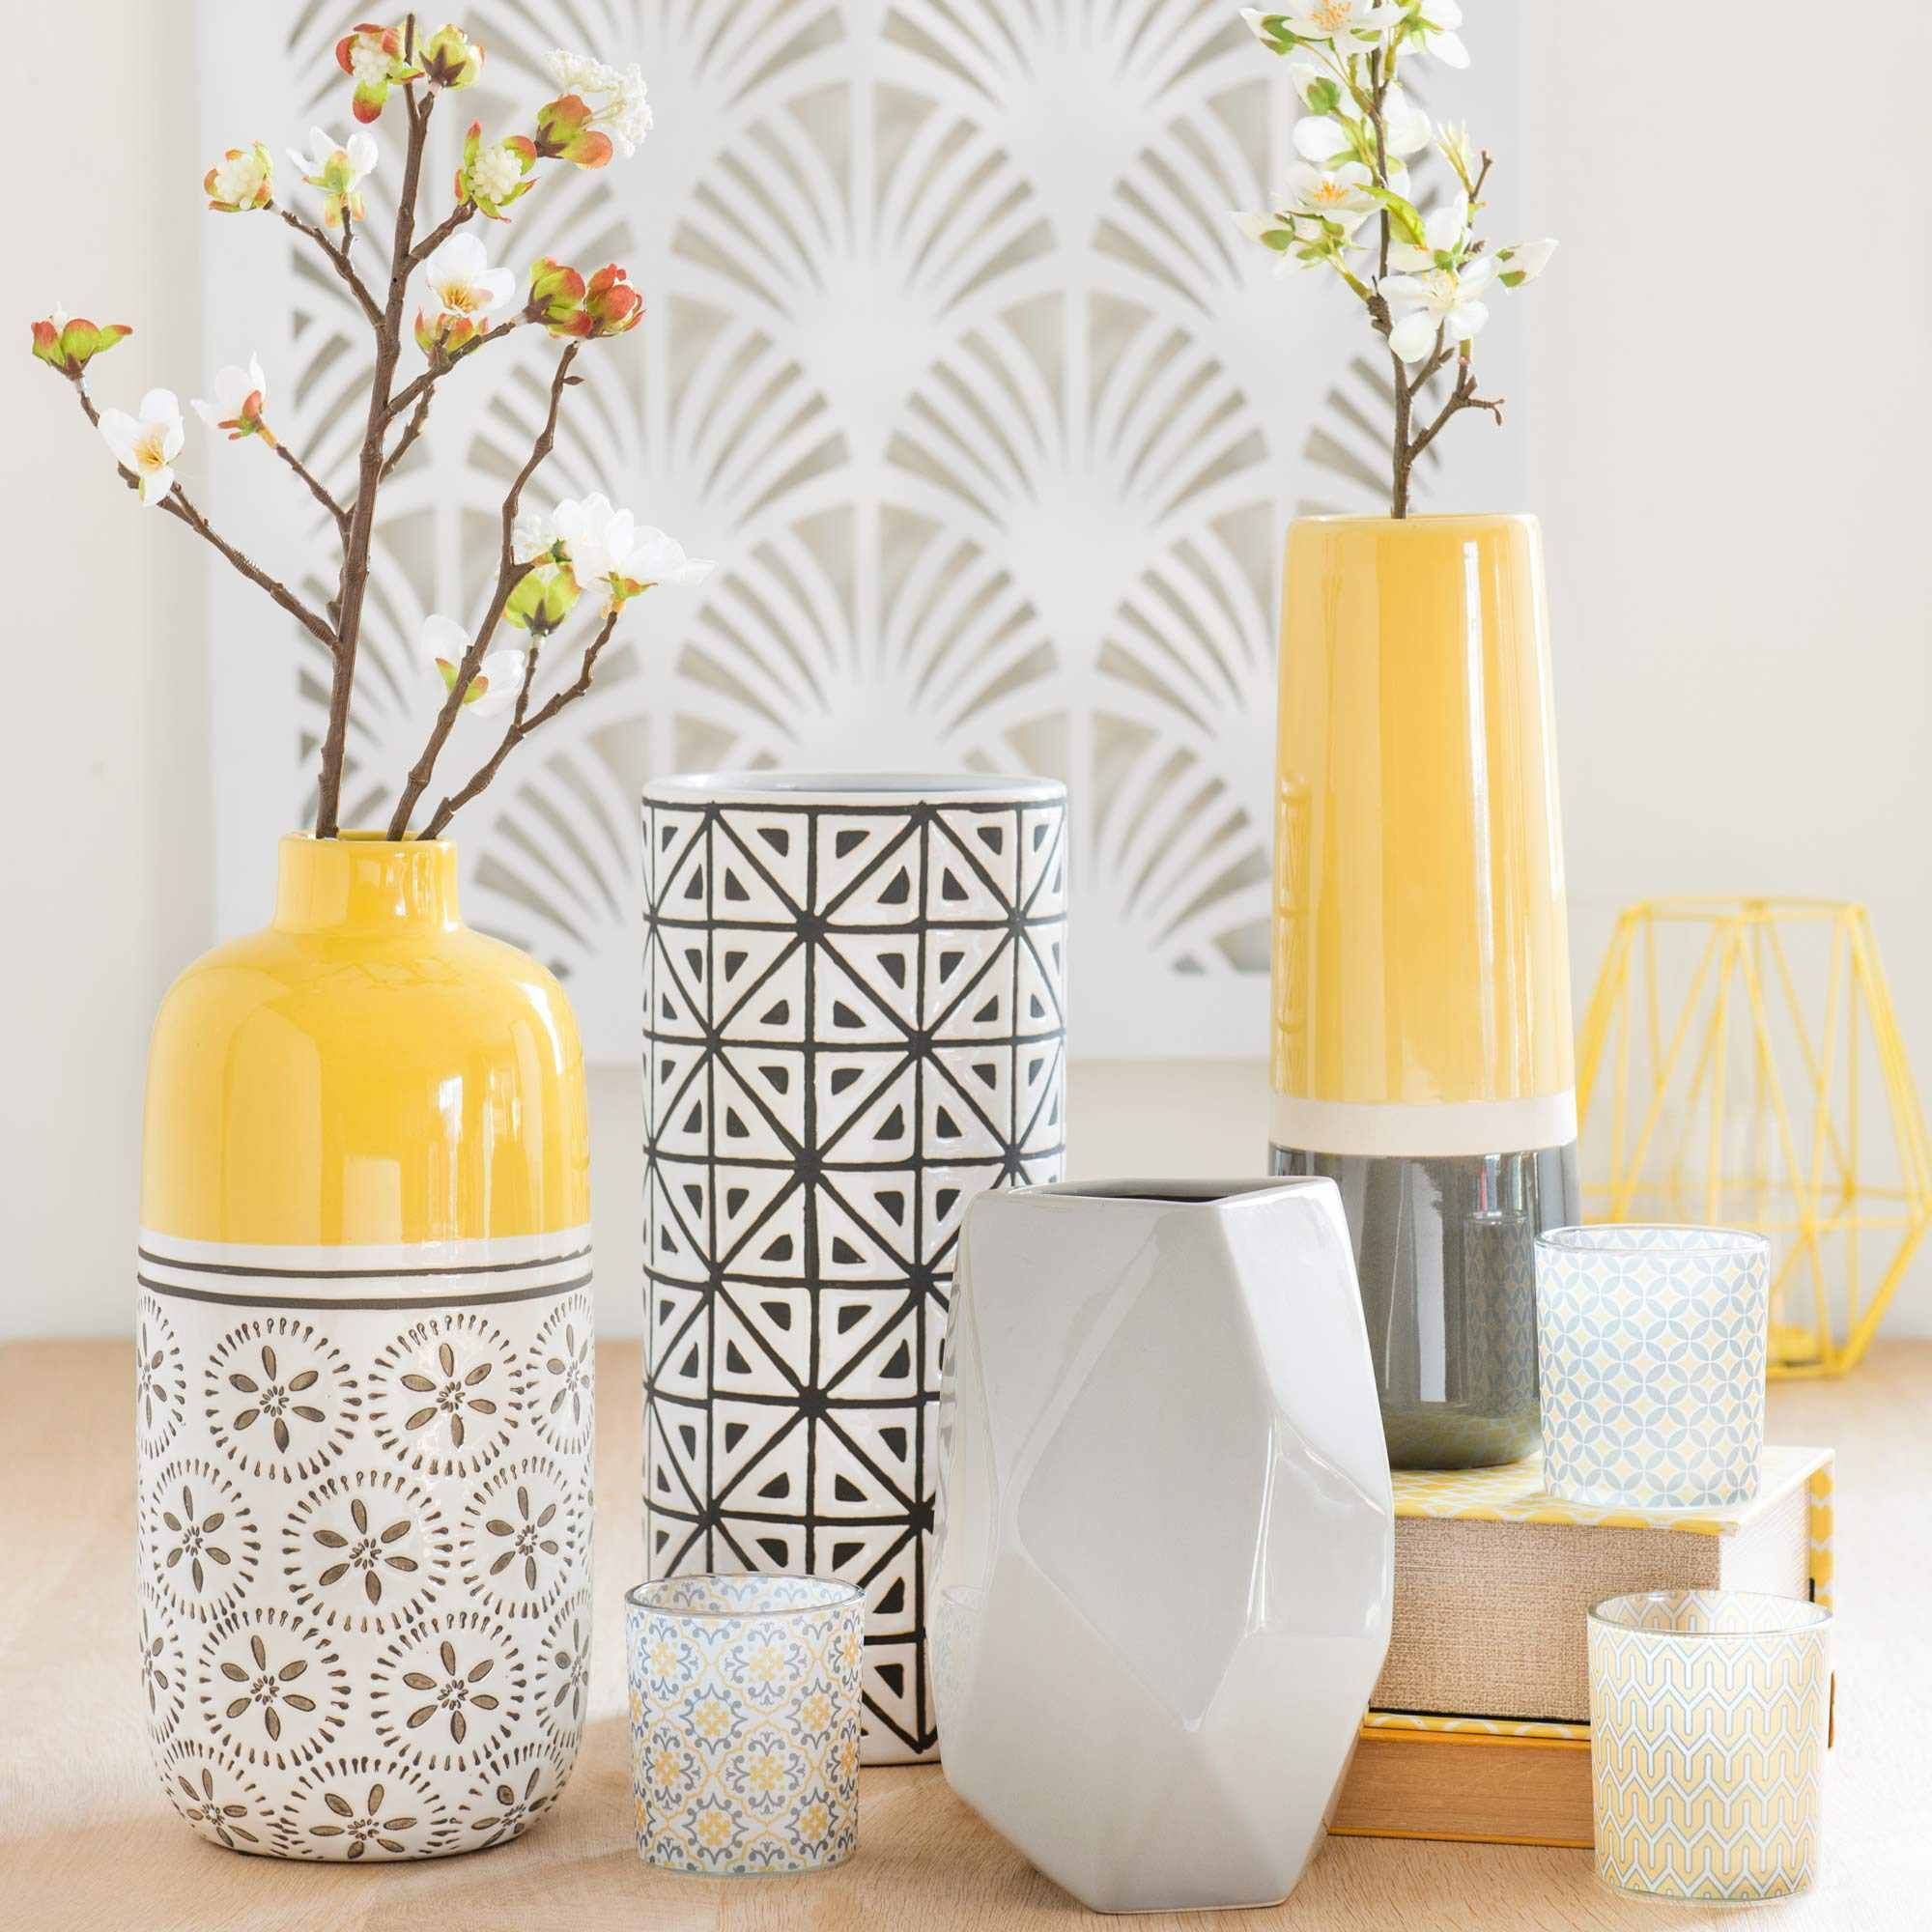 vase haut en gr s jaune gris h 30 cm yellow maisons du monde salon pinterest vase haut. Black Bedroom Furniture Sets. Home Design Ideas